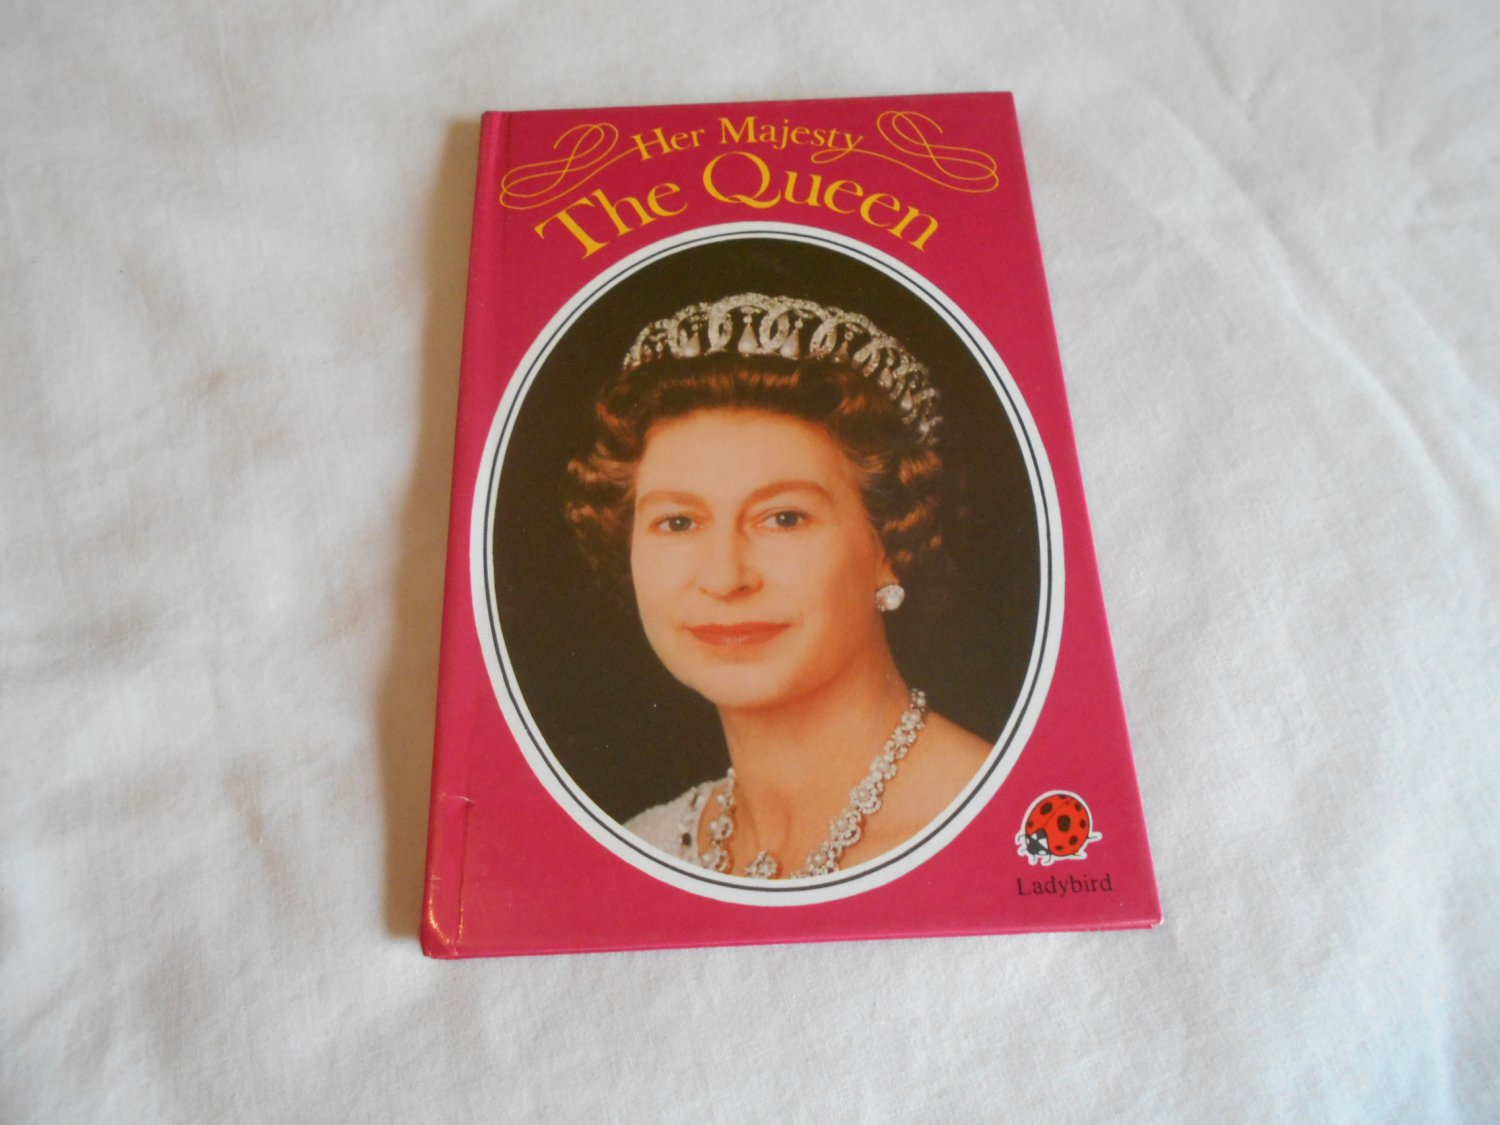 Her Majesty The Queen by Ian A. Morrison (1983) (CL45) History